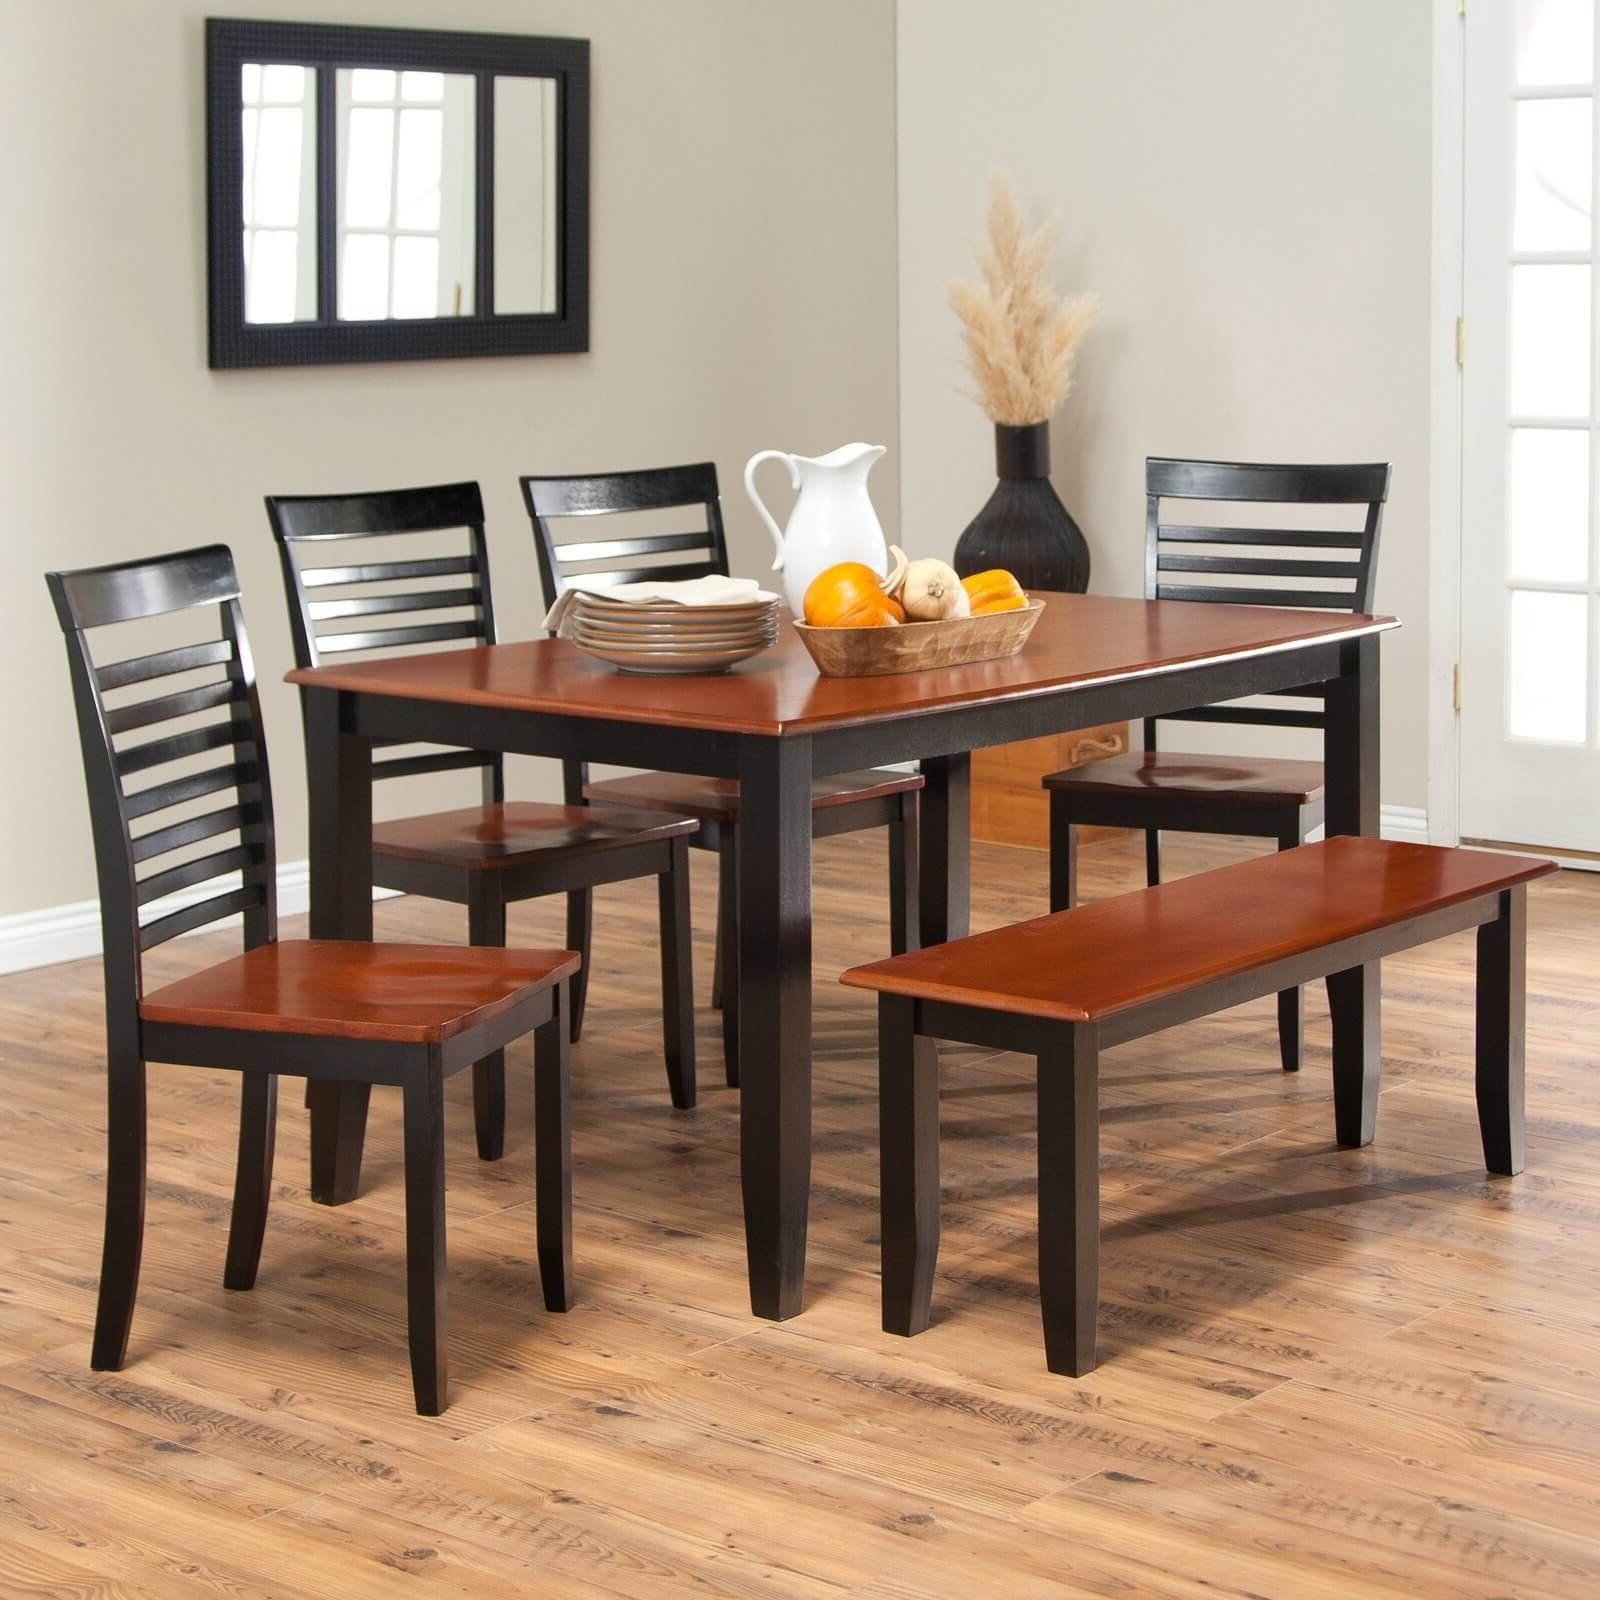 Most Recent Small Dining Tables And Bench Sets Pertaining To 26 Dining Room Sets (Big And Small) With Bench Seating (2018) (View 14 of 25)